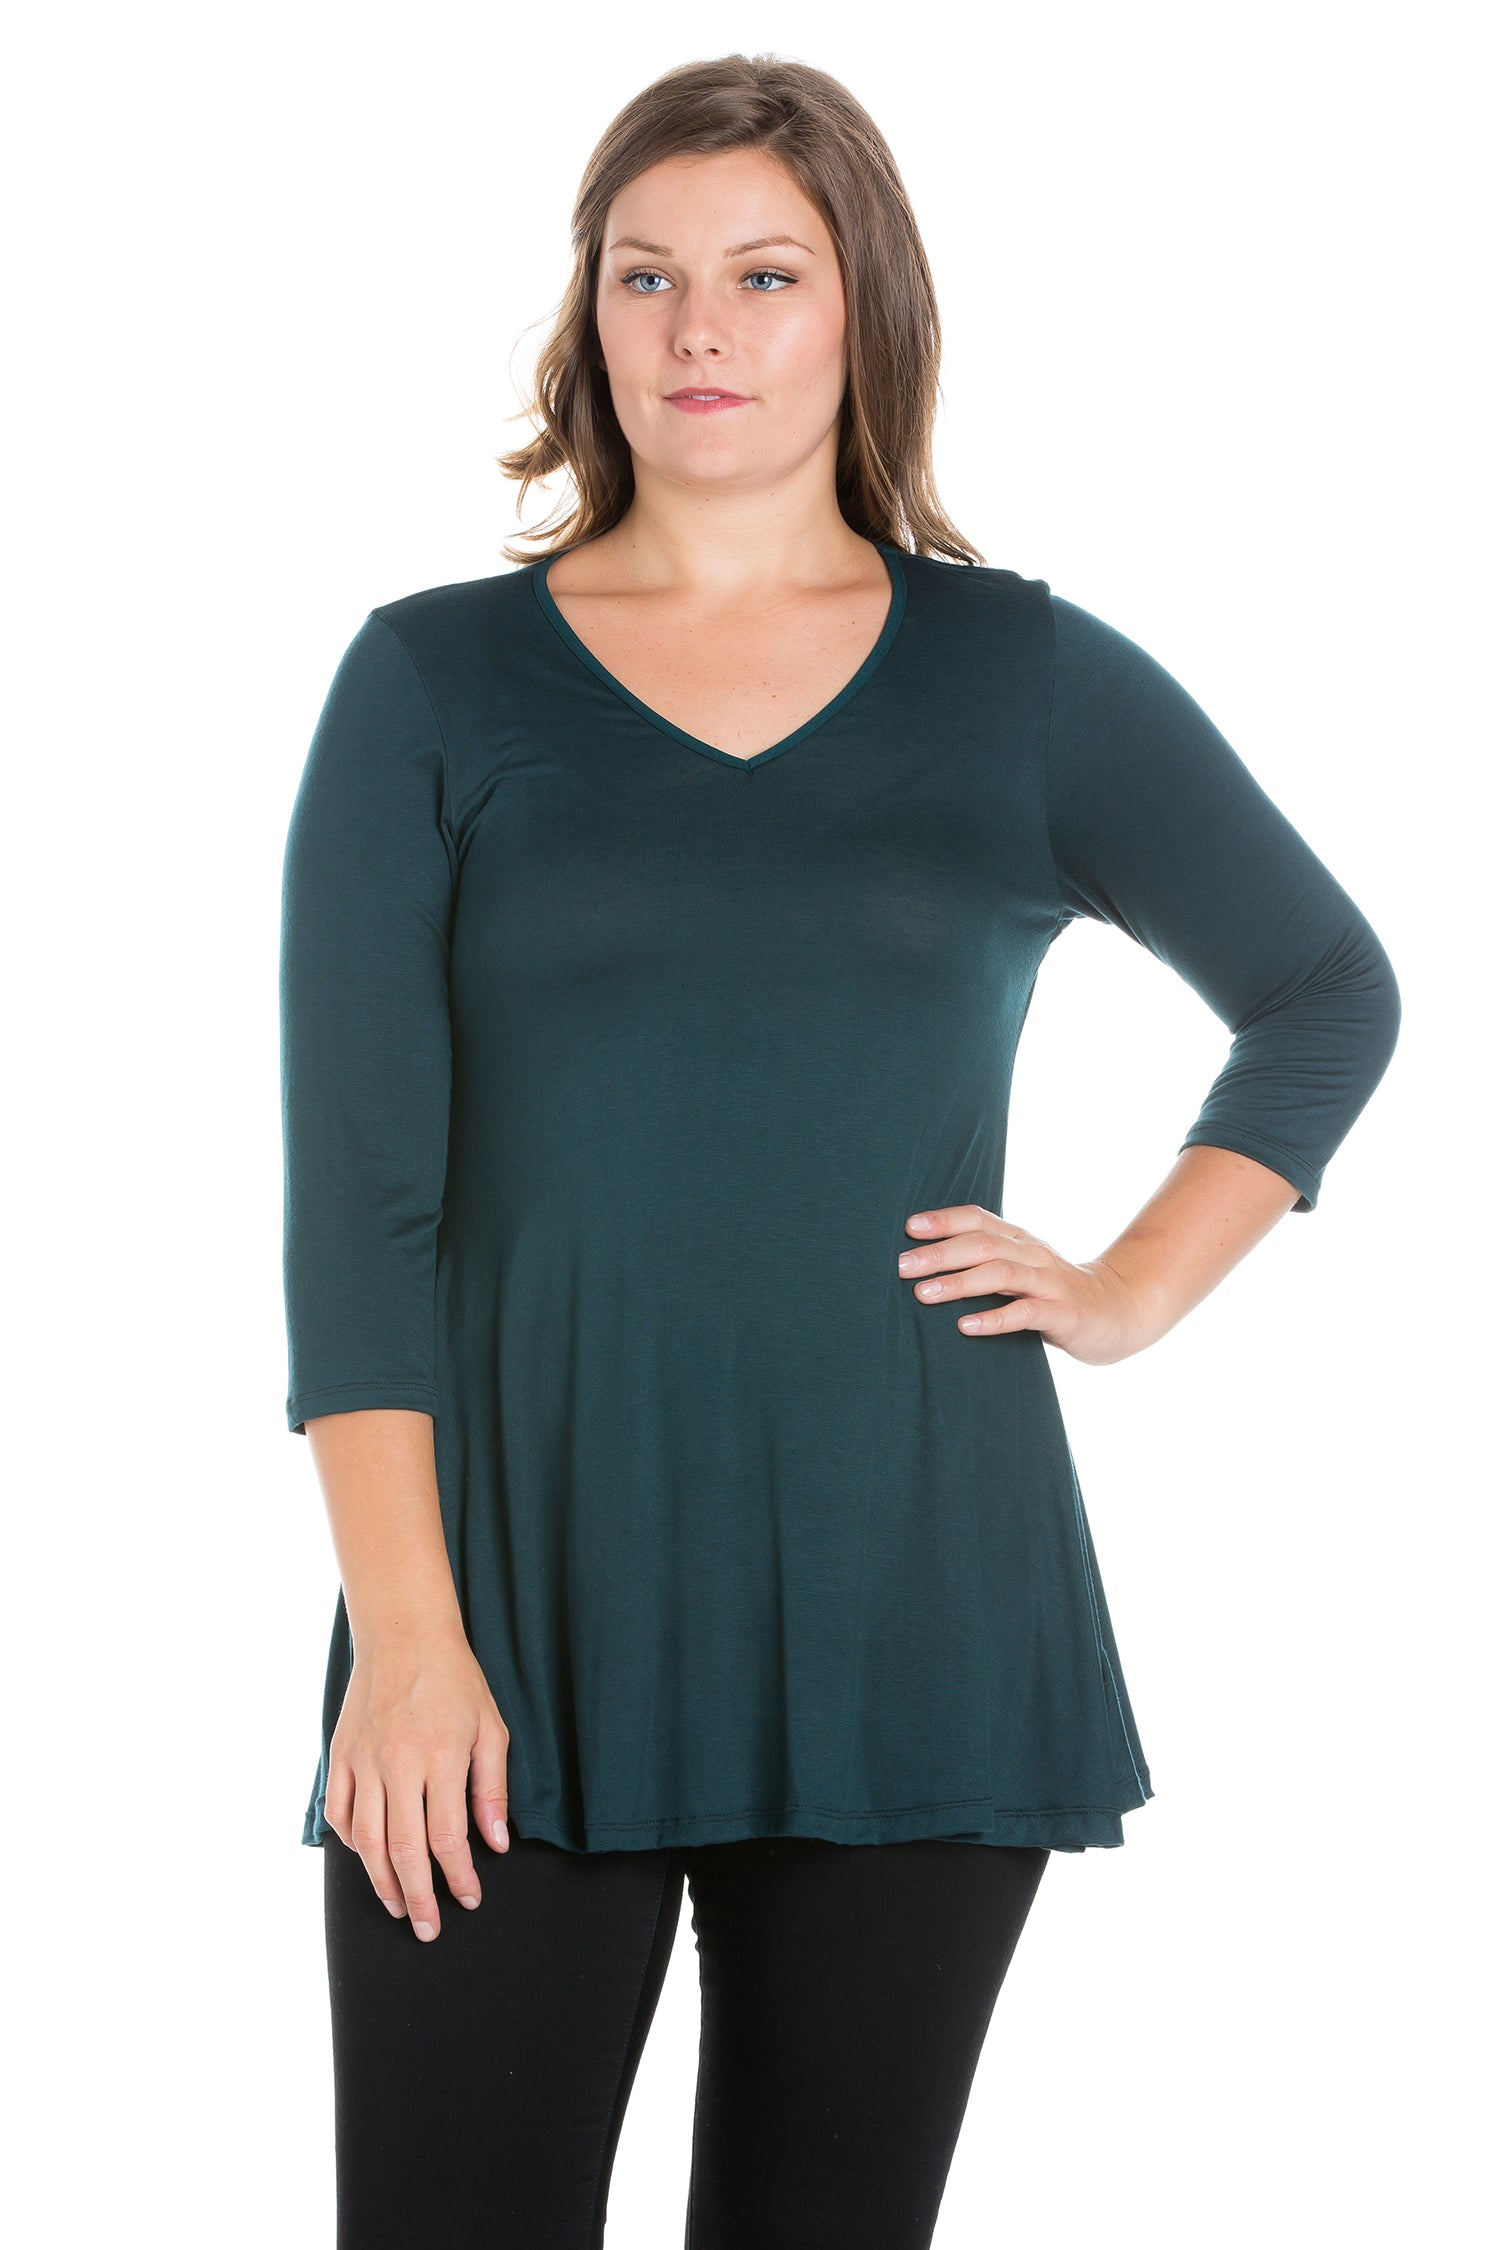 24seven Comfort Apparel Three Quarter Sleeve V-Neck Plus Size Tunic Top